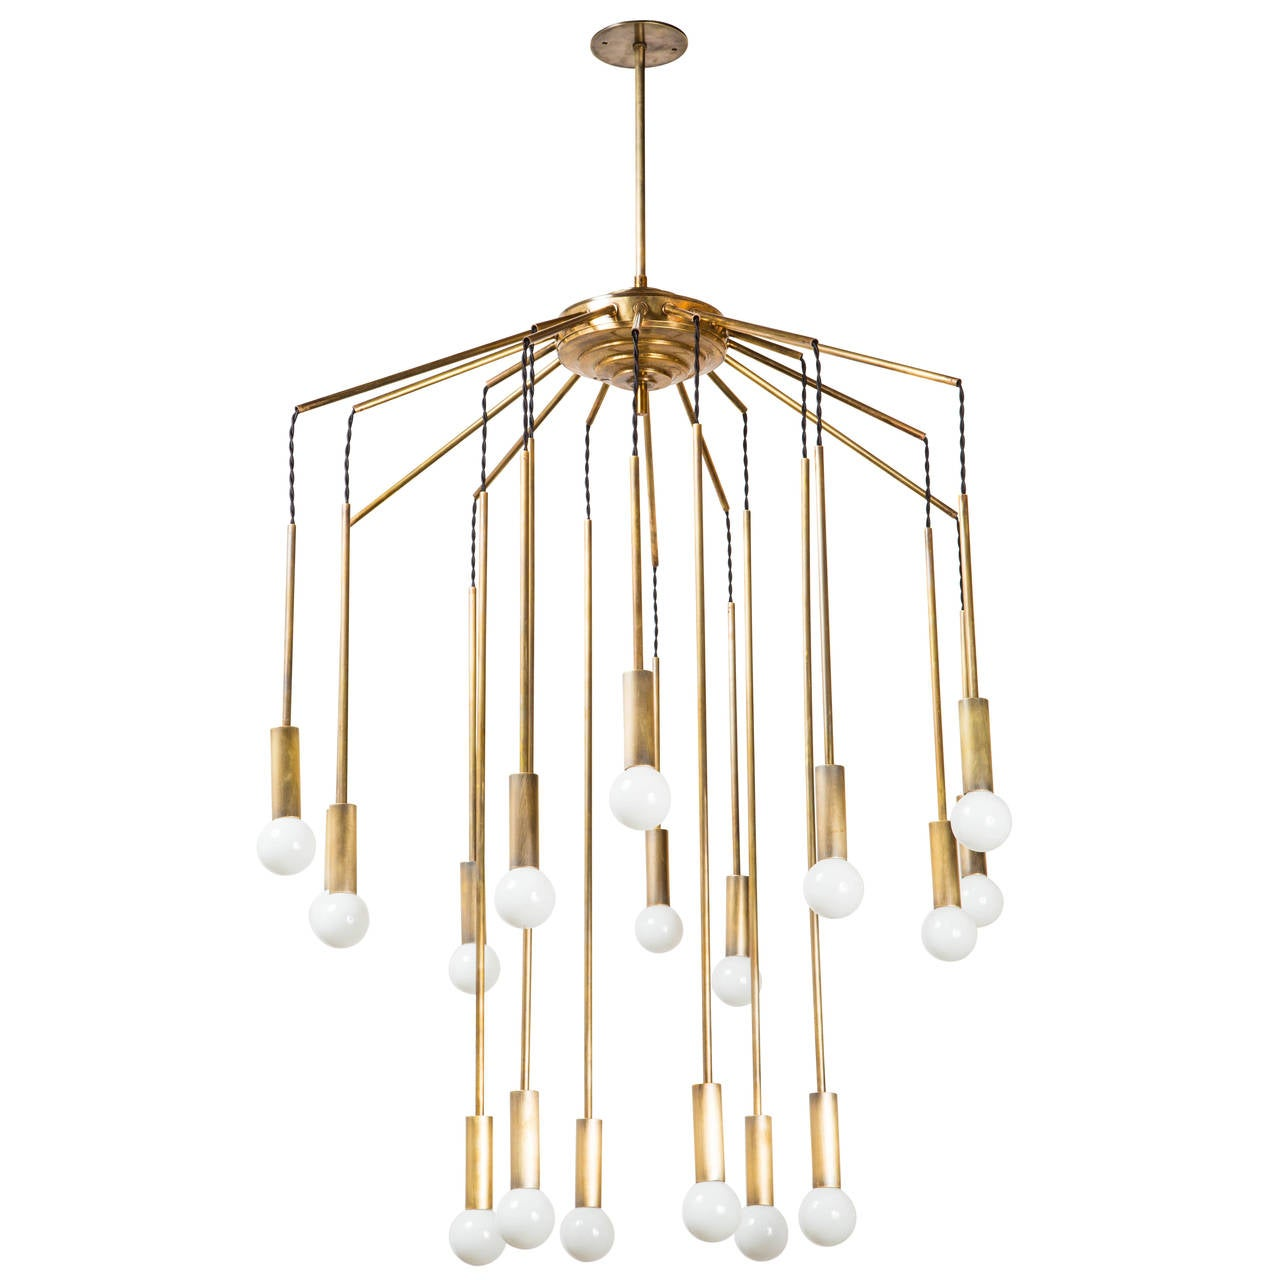 Italian Eighteen Arm Chandelier 1